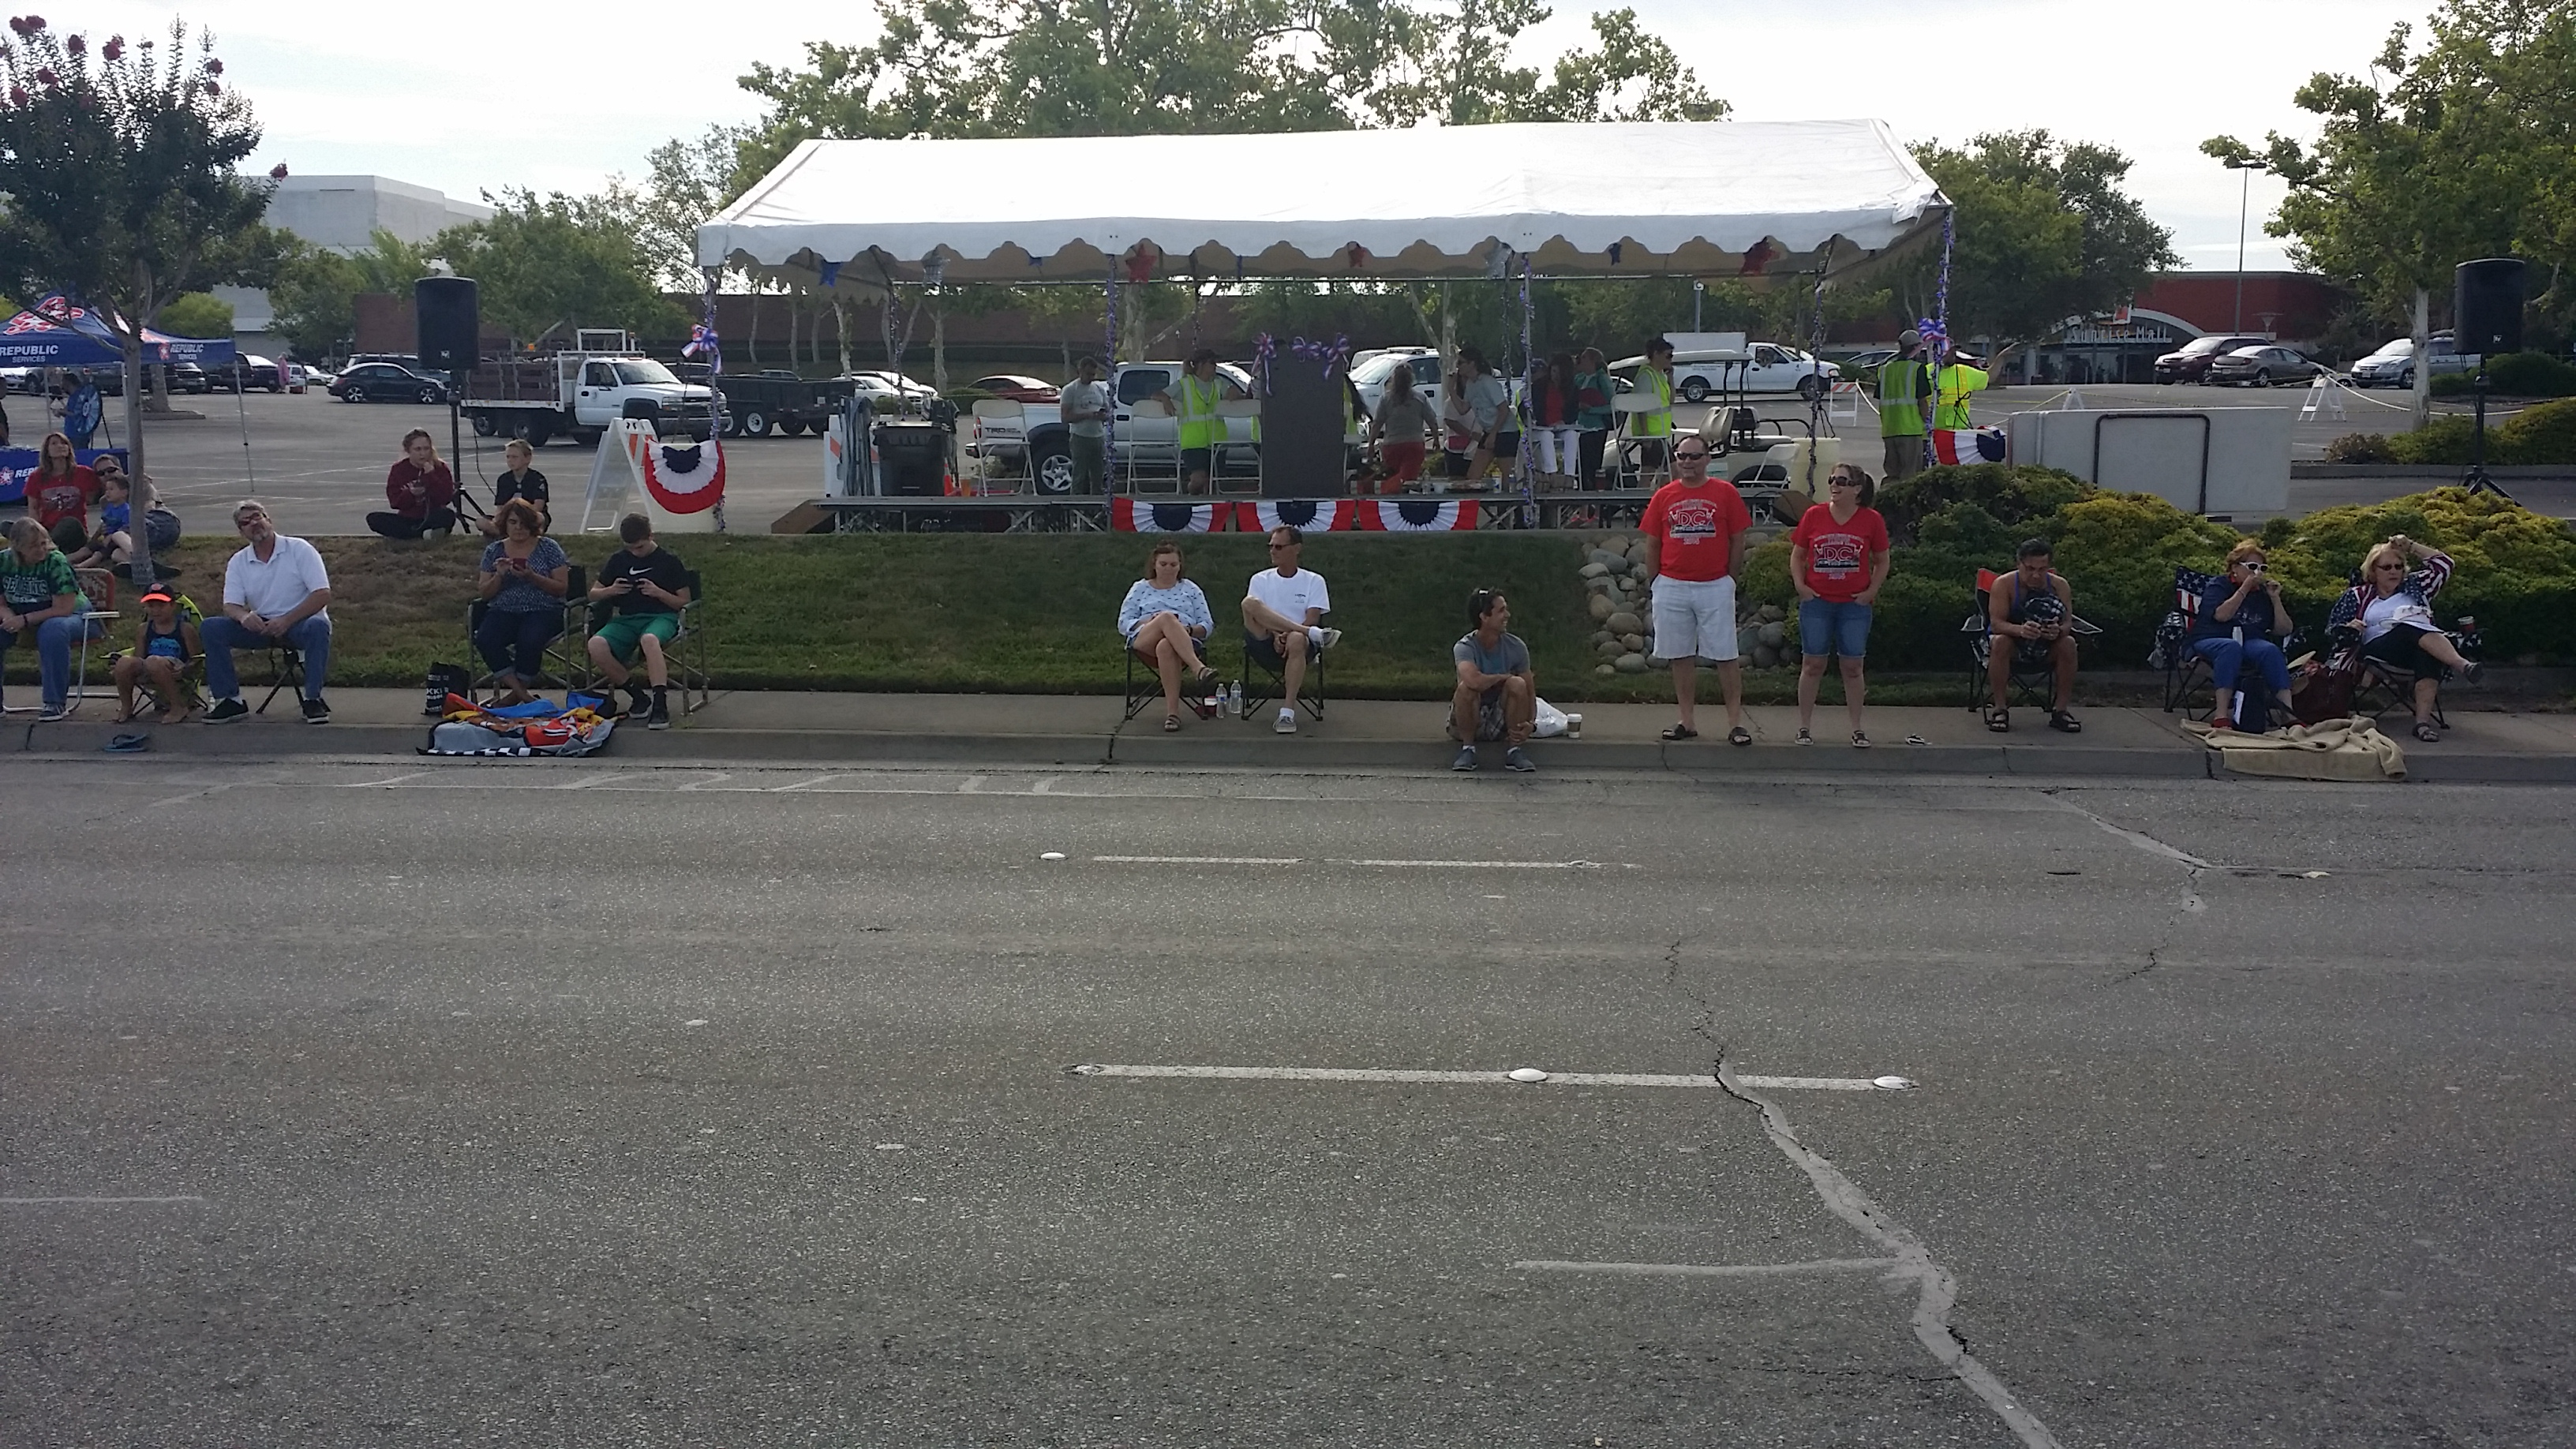 Neighbors gather at the parade grandstand